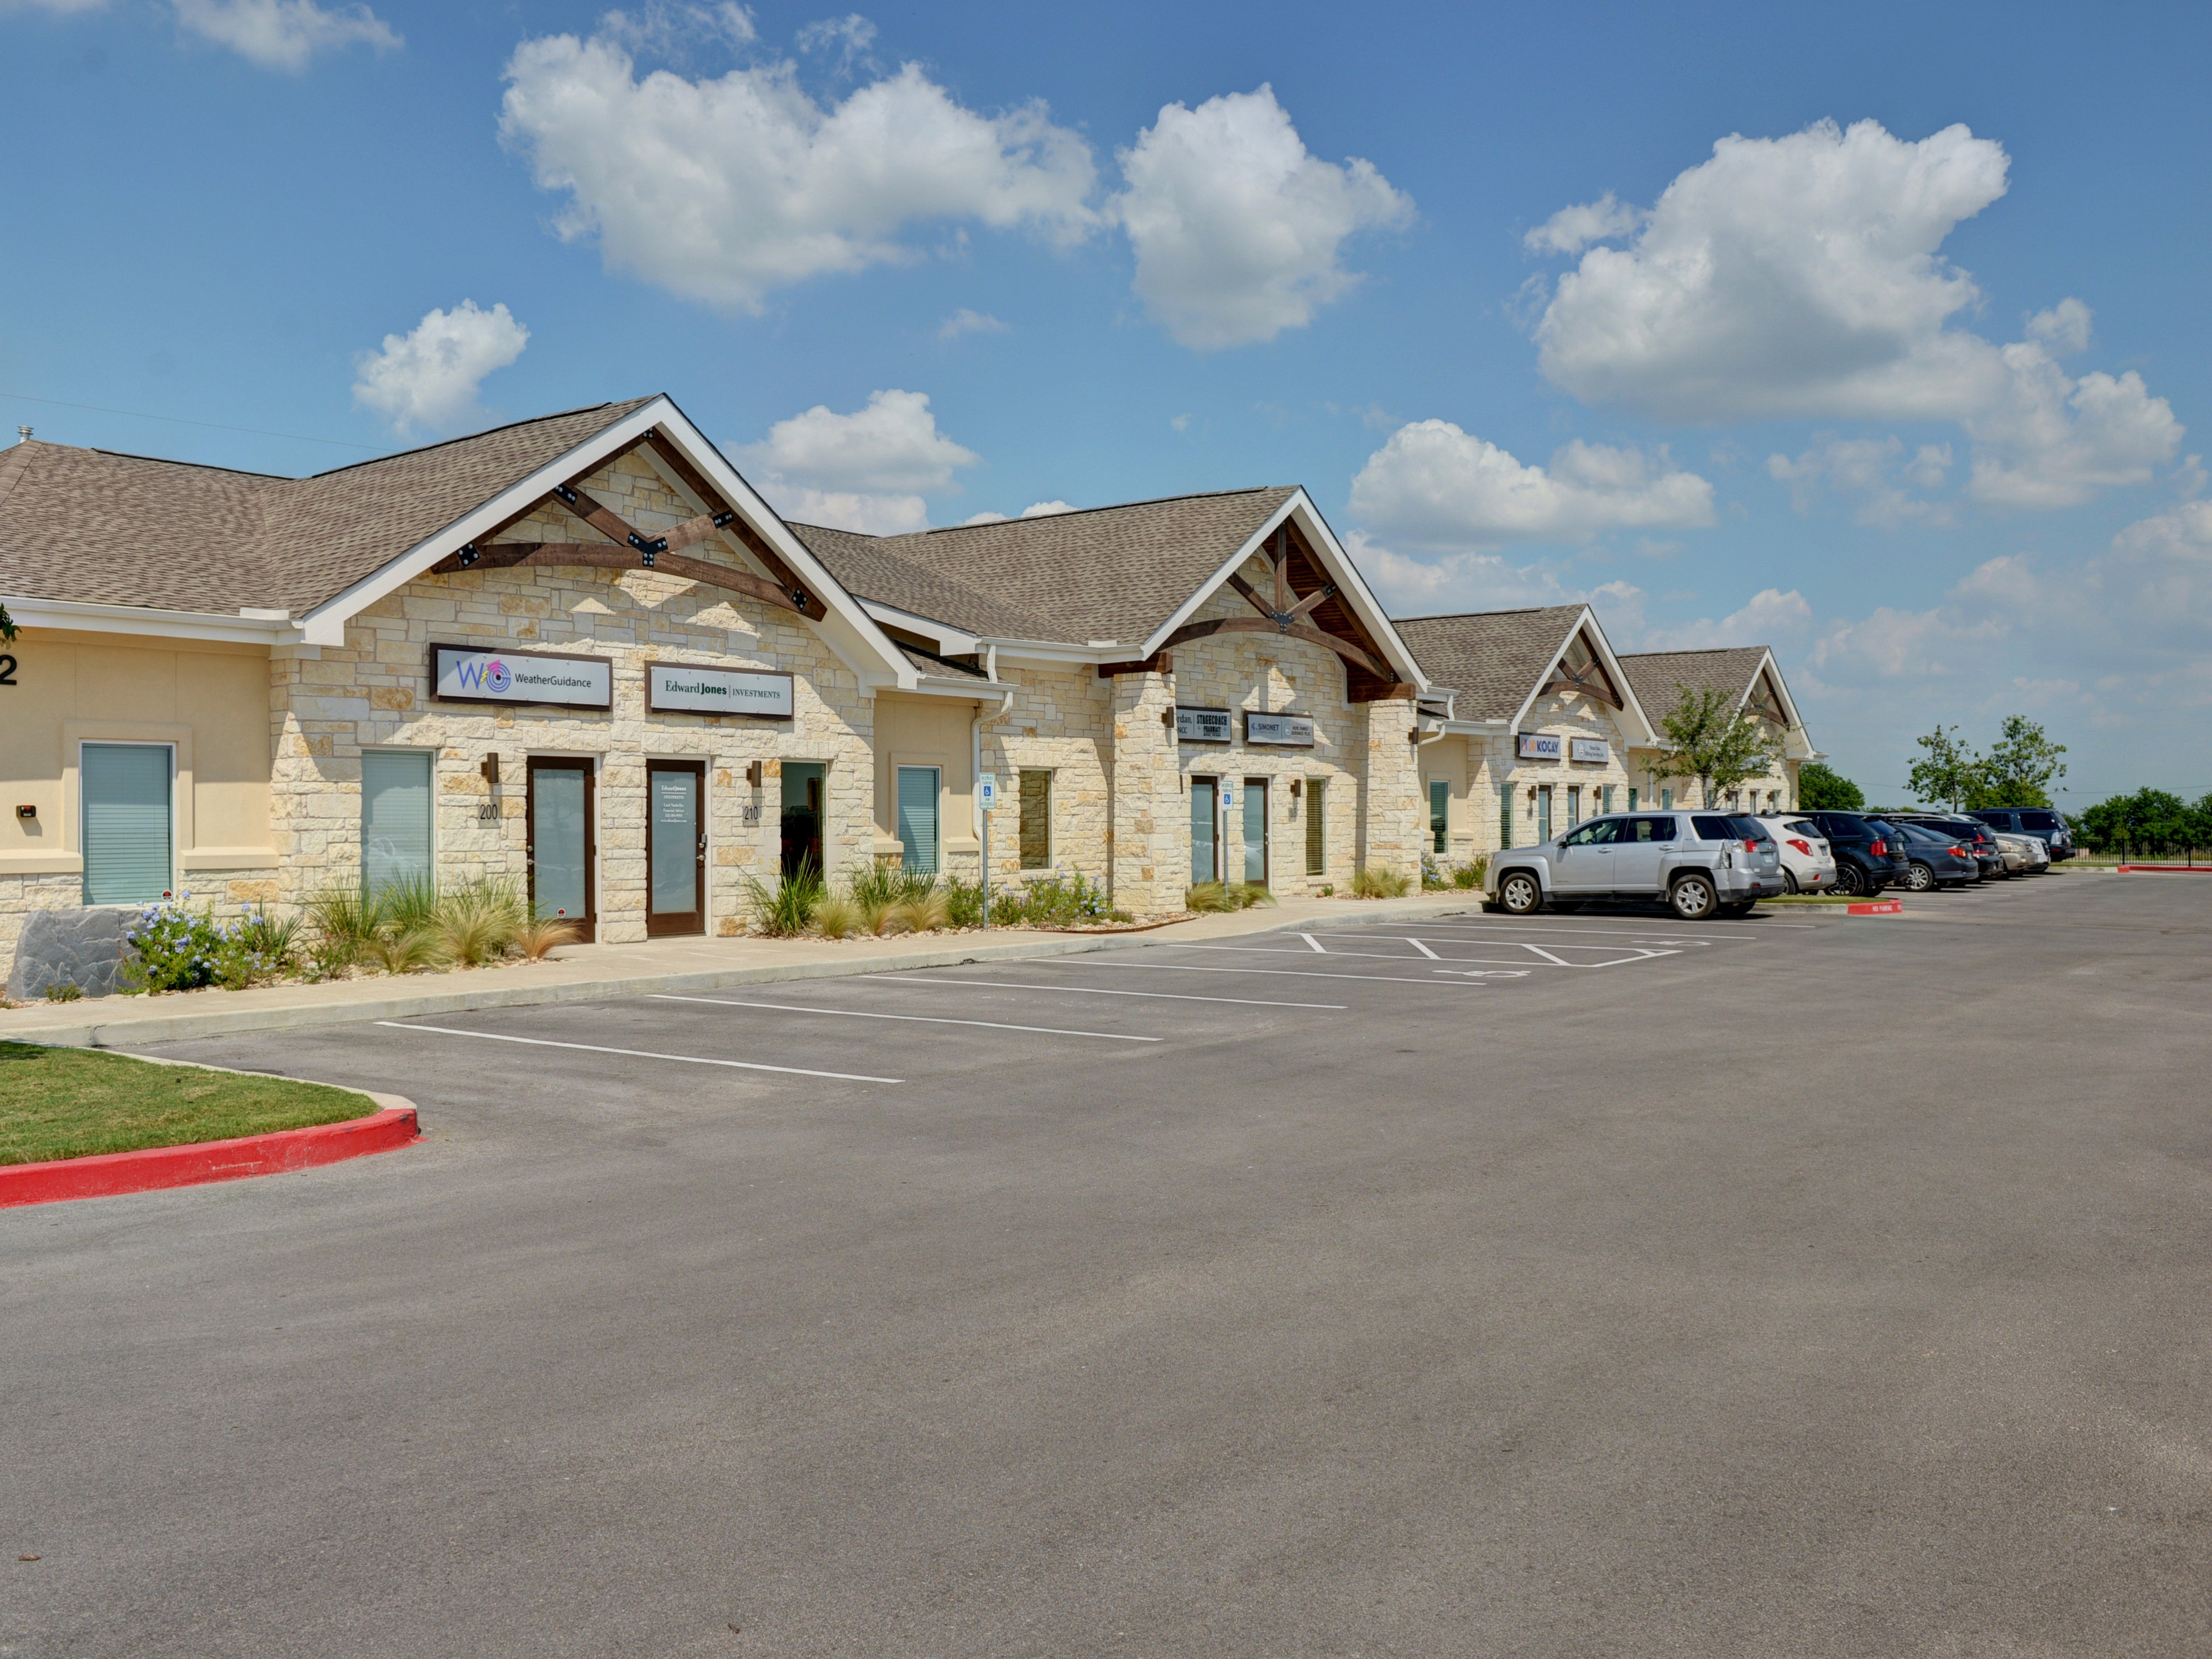 Dacy Lane Professional & Medical Center in Kyle, TX